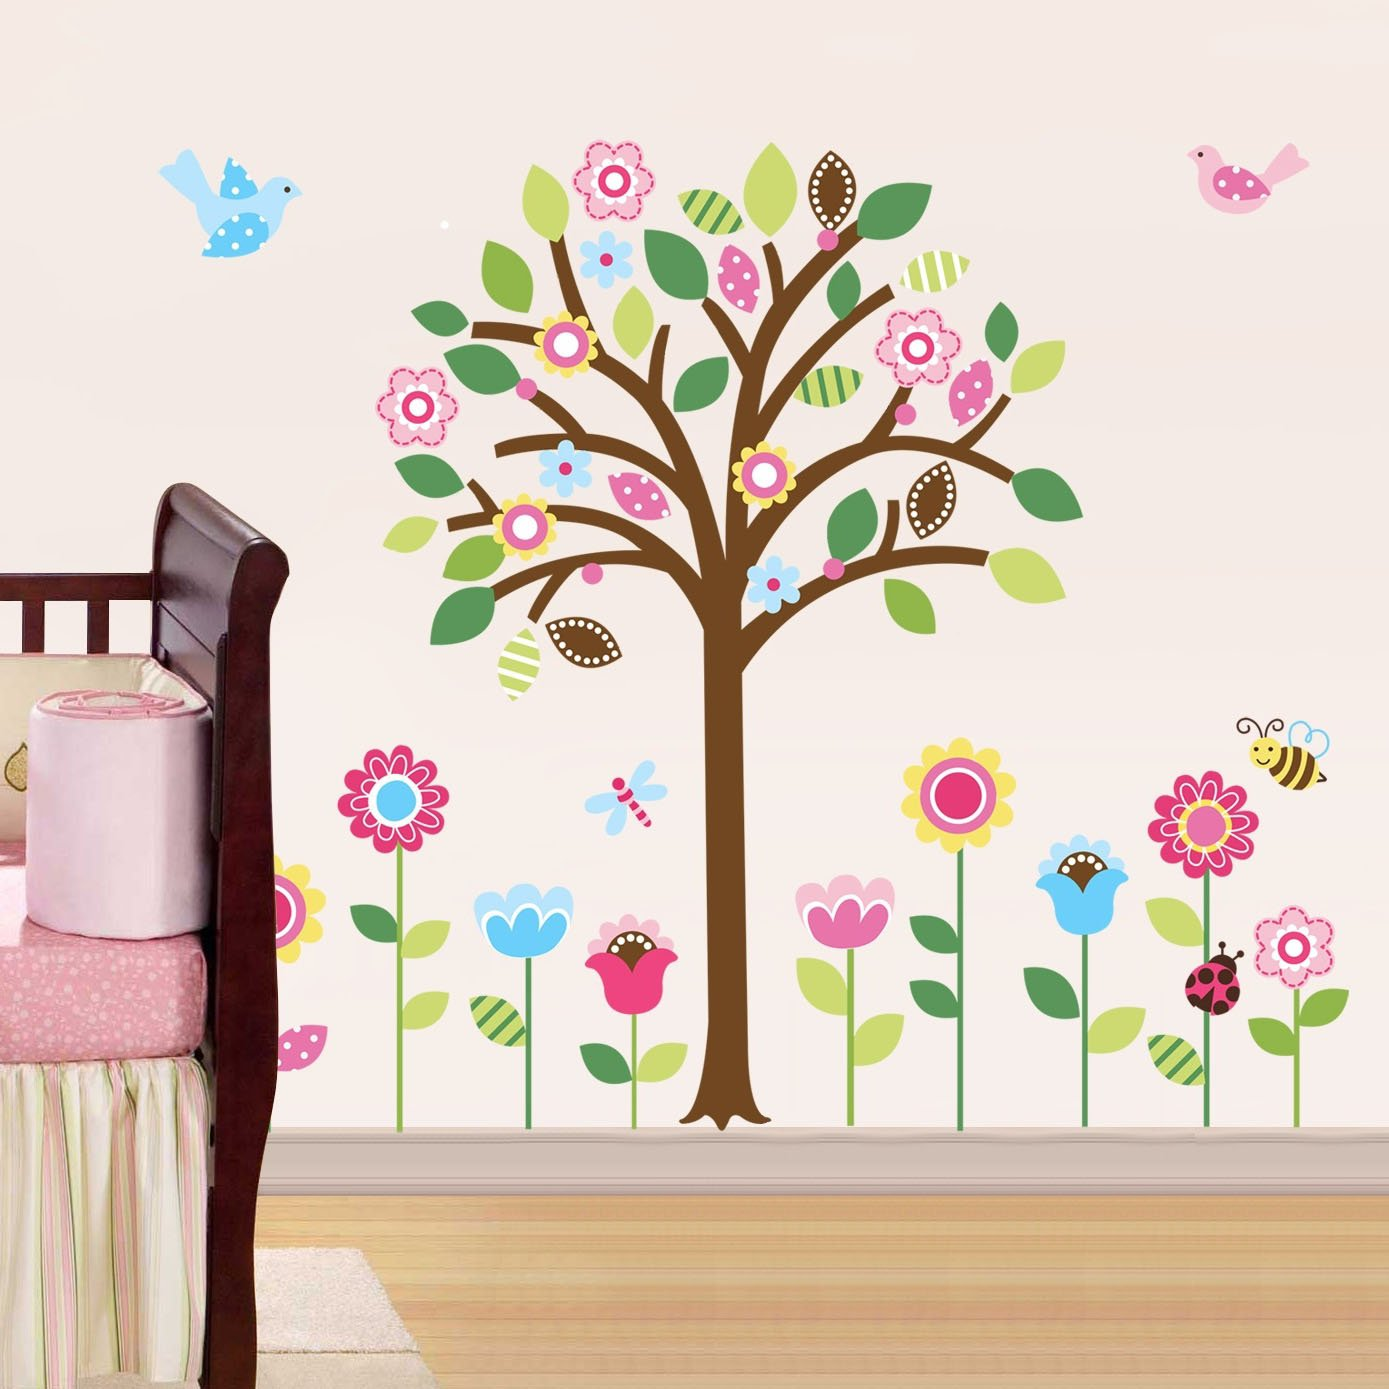 Amazon.com: Pretty Pastel Garden Giant Peel & Stick Wall Art ...